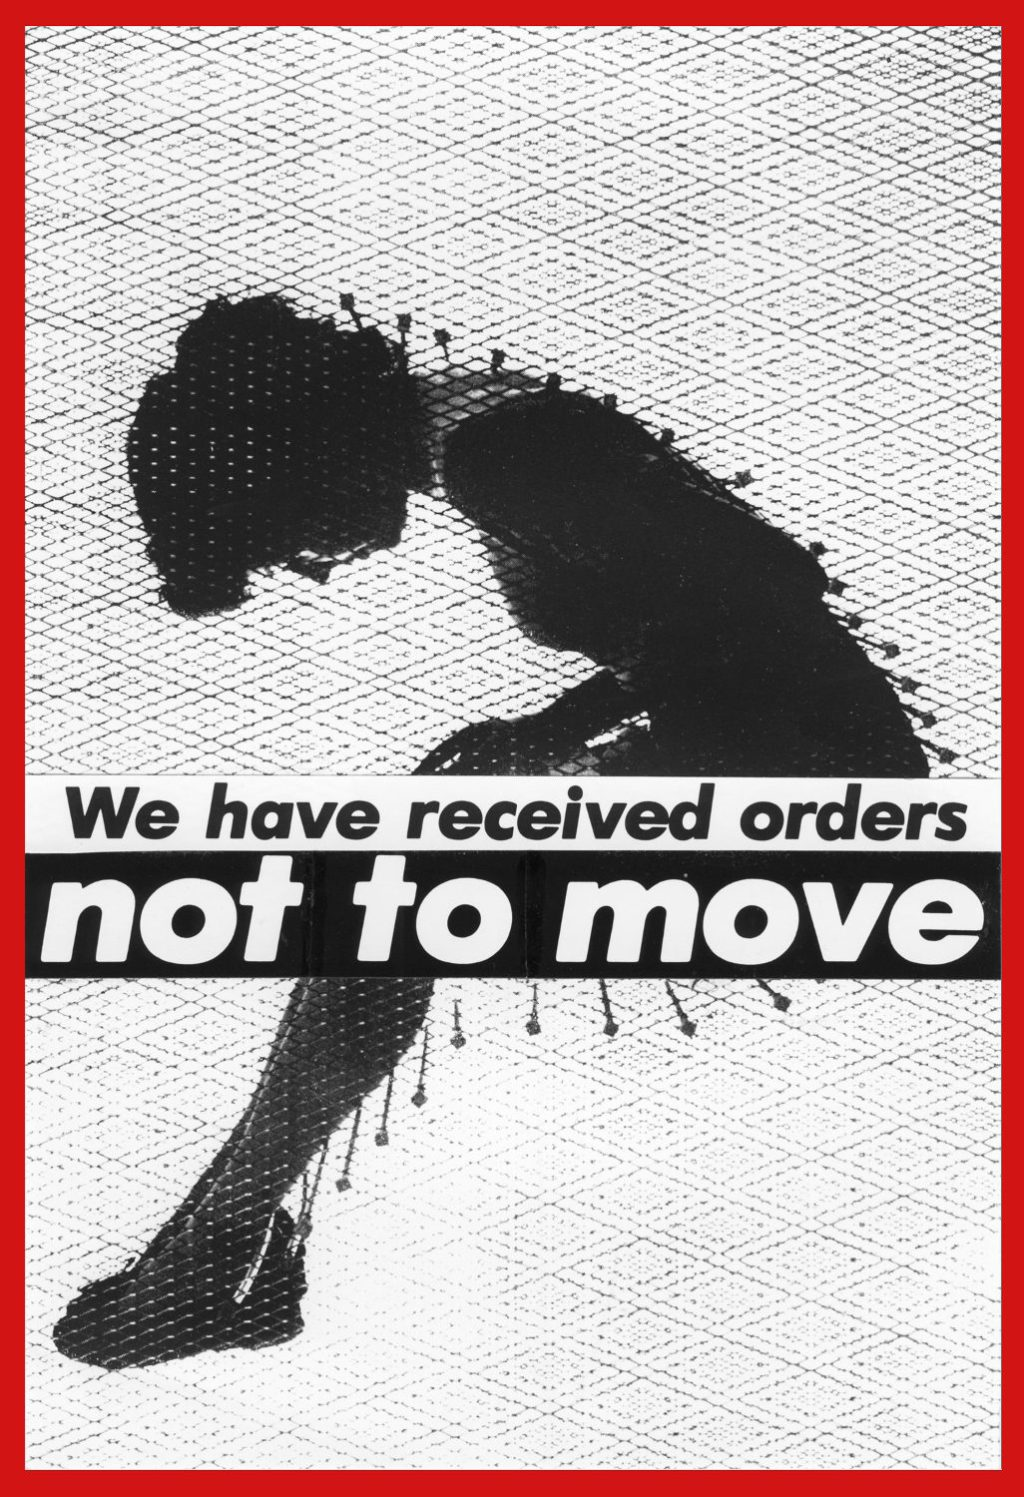 barbara-kruger_untitled-we-have-received-orders-not-to-move_1982_aware_woemn-artists_artistes-femmes-1026×1500